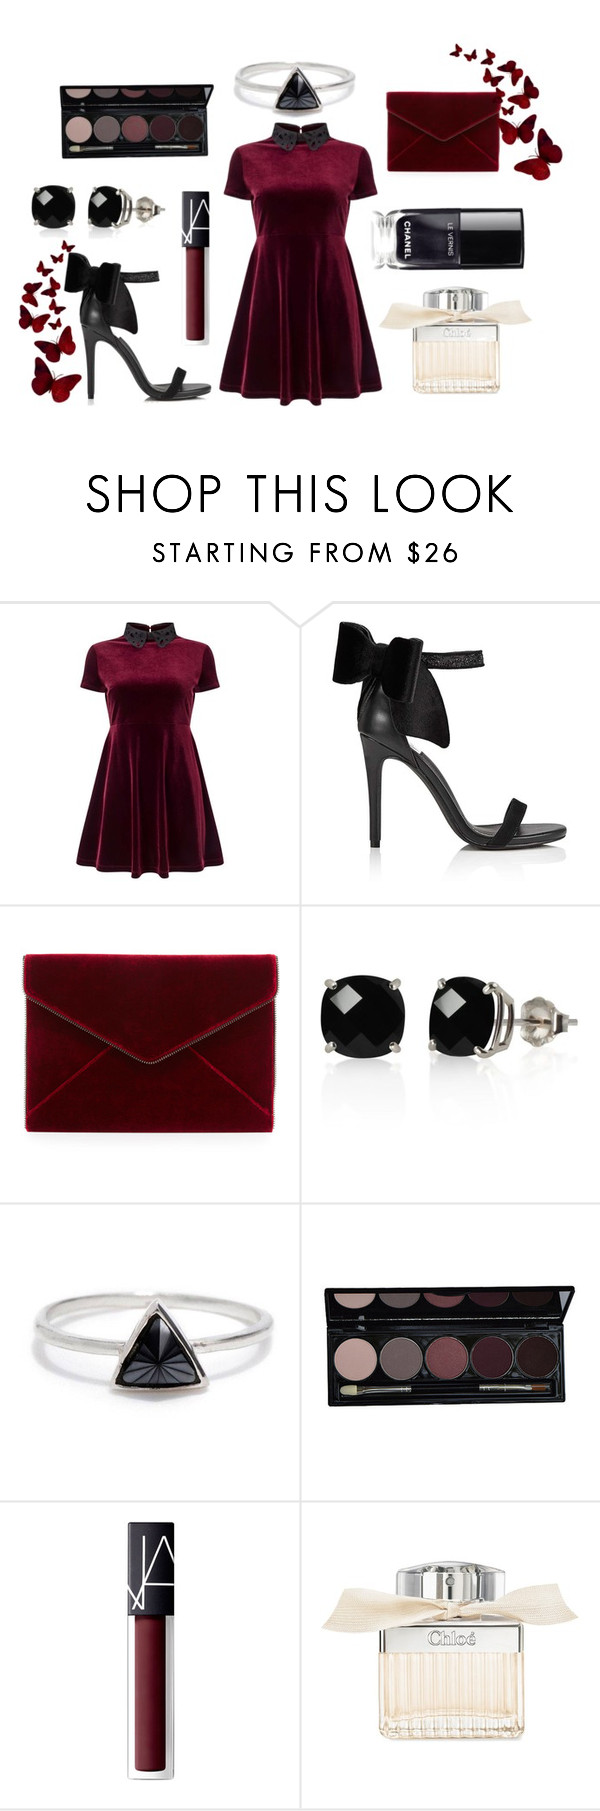 Black sandals belk - A Fashion Look From November 2016 Featuring Flared Skirt Black Heeled Sandals And Rebecca Minkoff Handbags Browse And Shop Related Looks